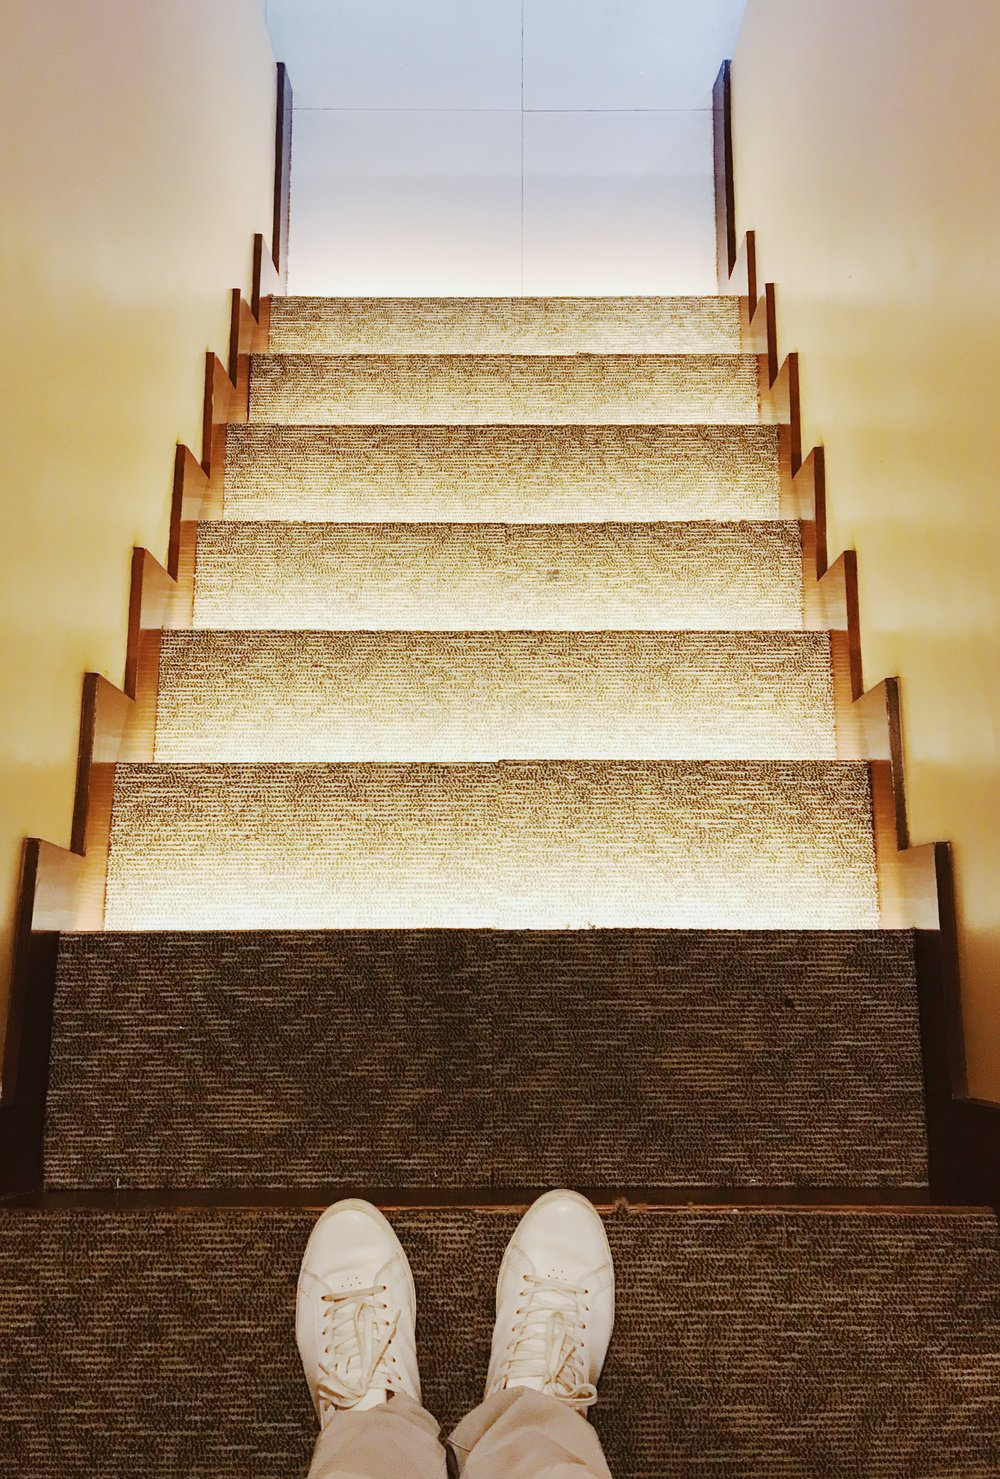 The stairs are well-lit for safety purposes